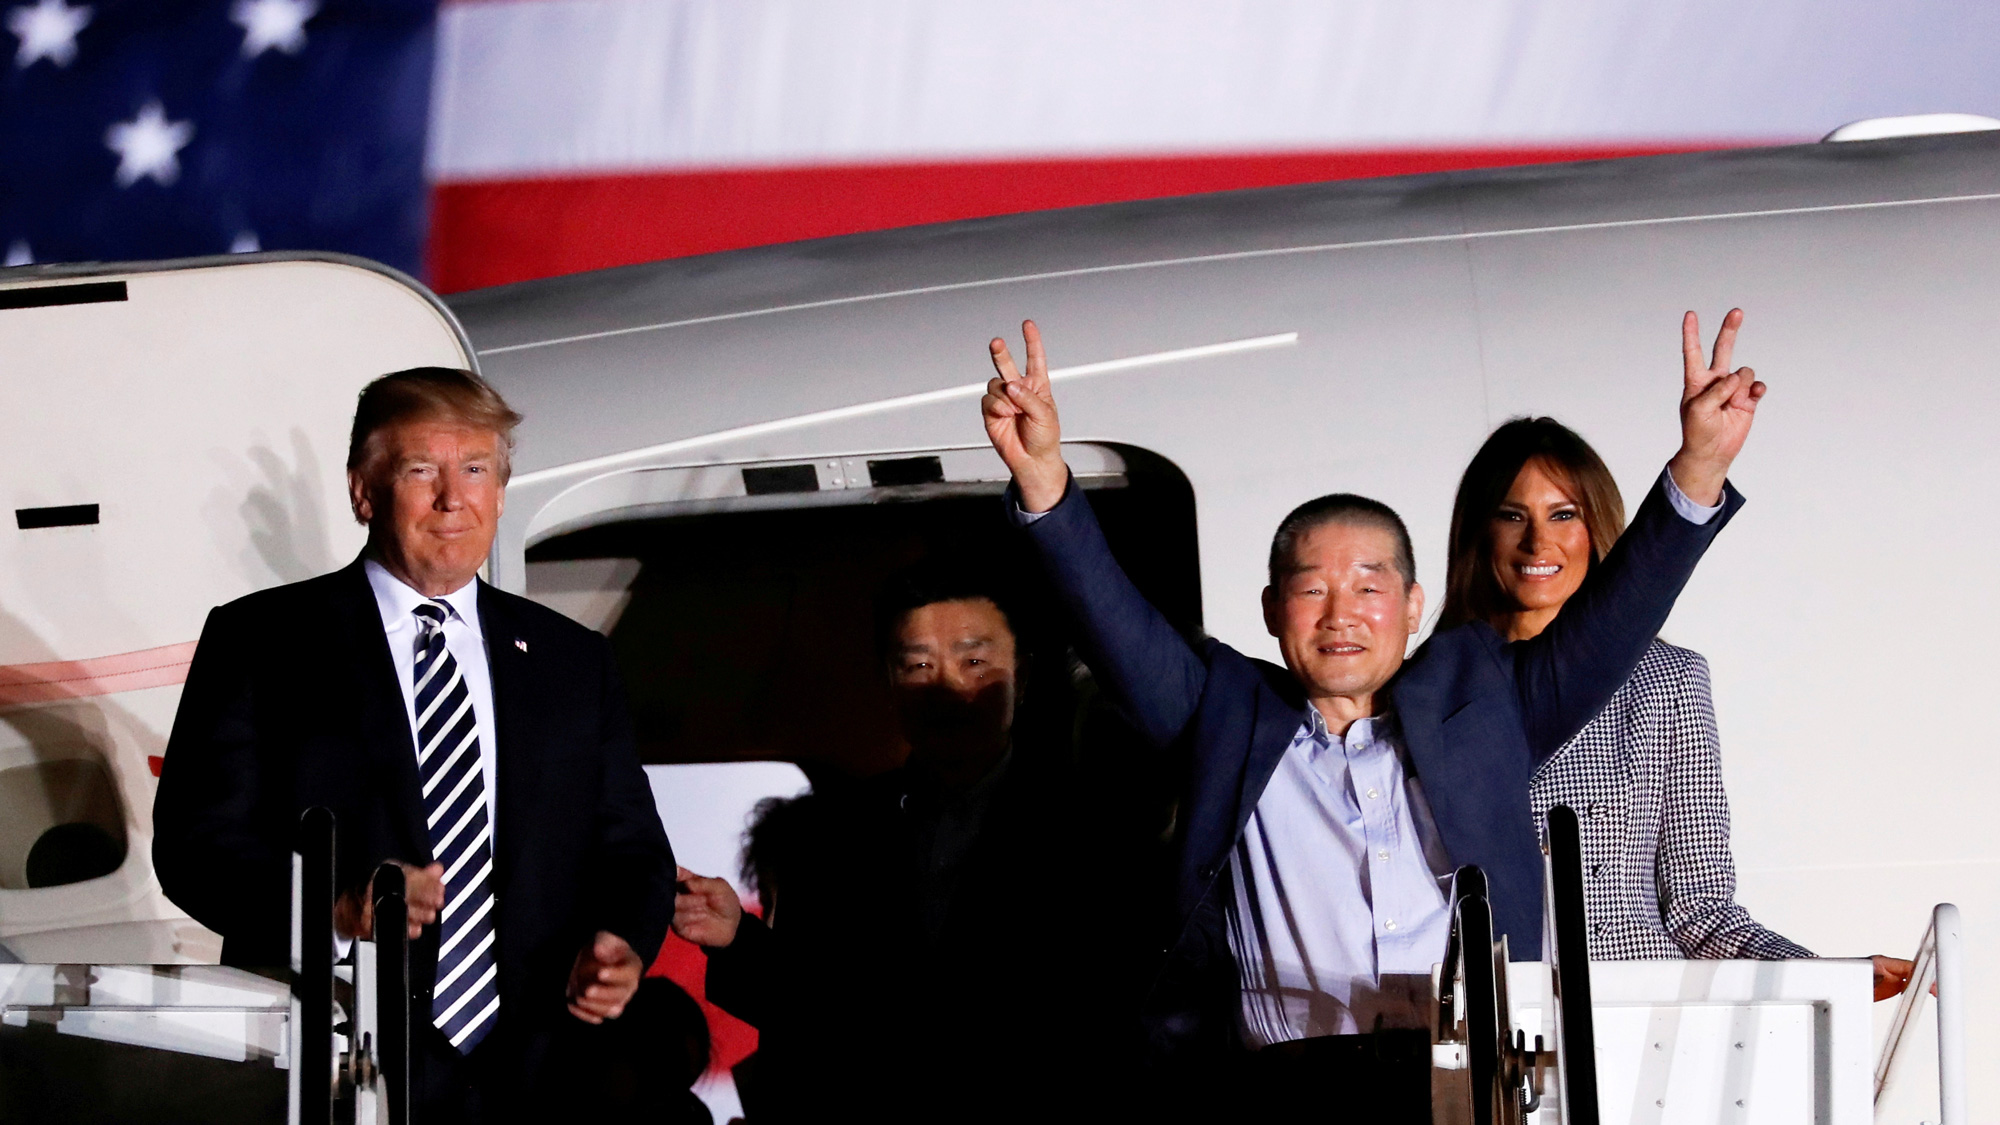 A man holds two fingers up on each hand as he exits an airplane. On the left is Donald Trump. Melania Trump is on the right.